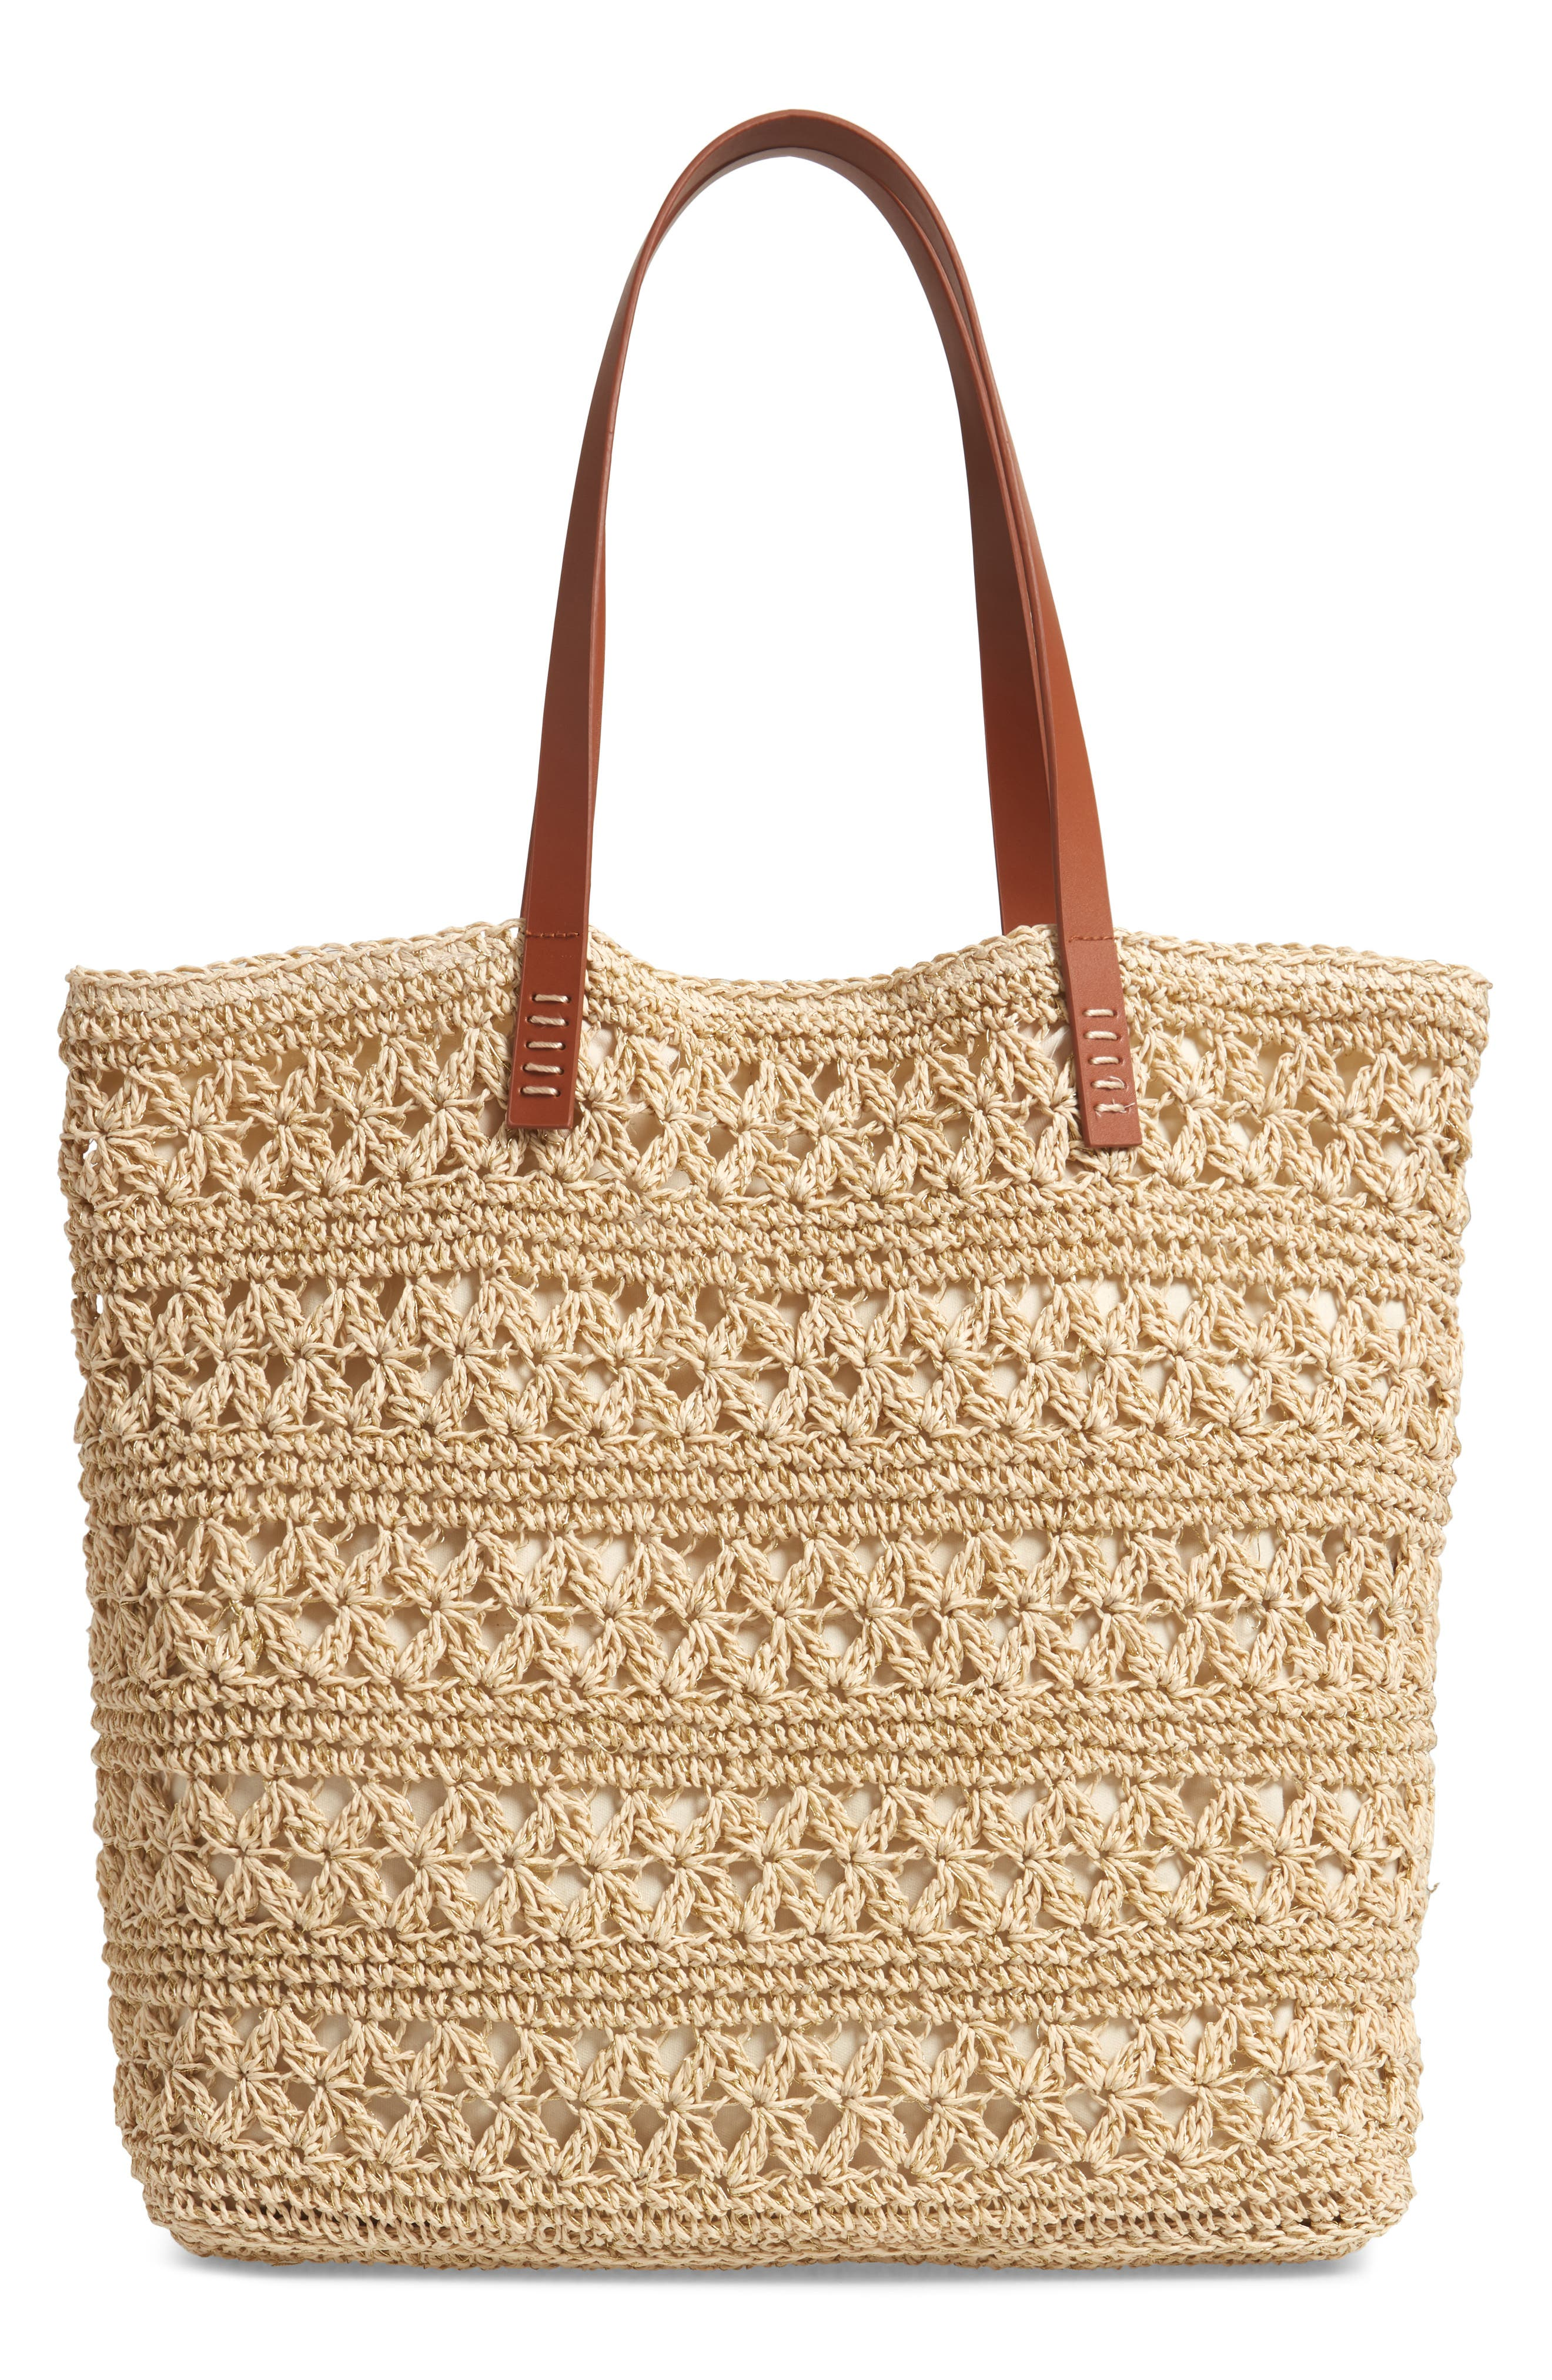 NORDSTROM, Packable Woven Raffia Tote, Alternate thumbnail 4, color, NATURAL